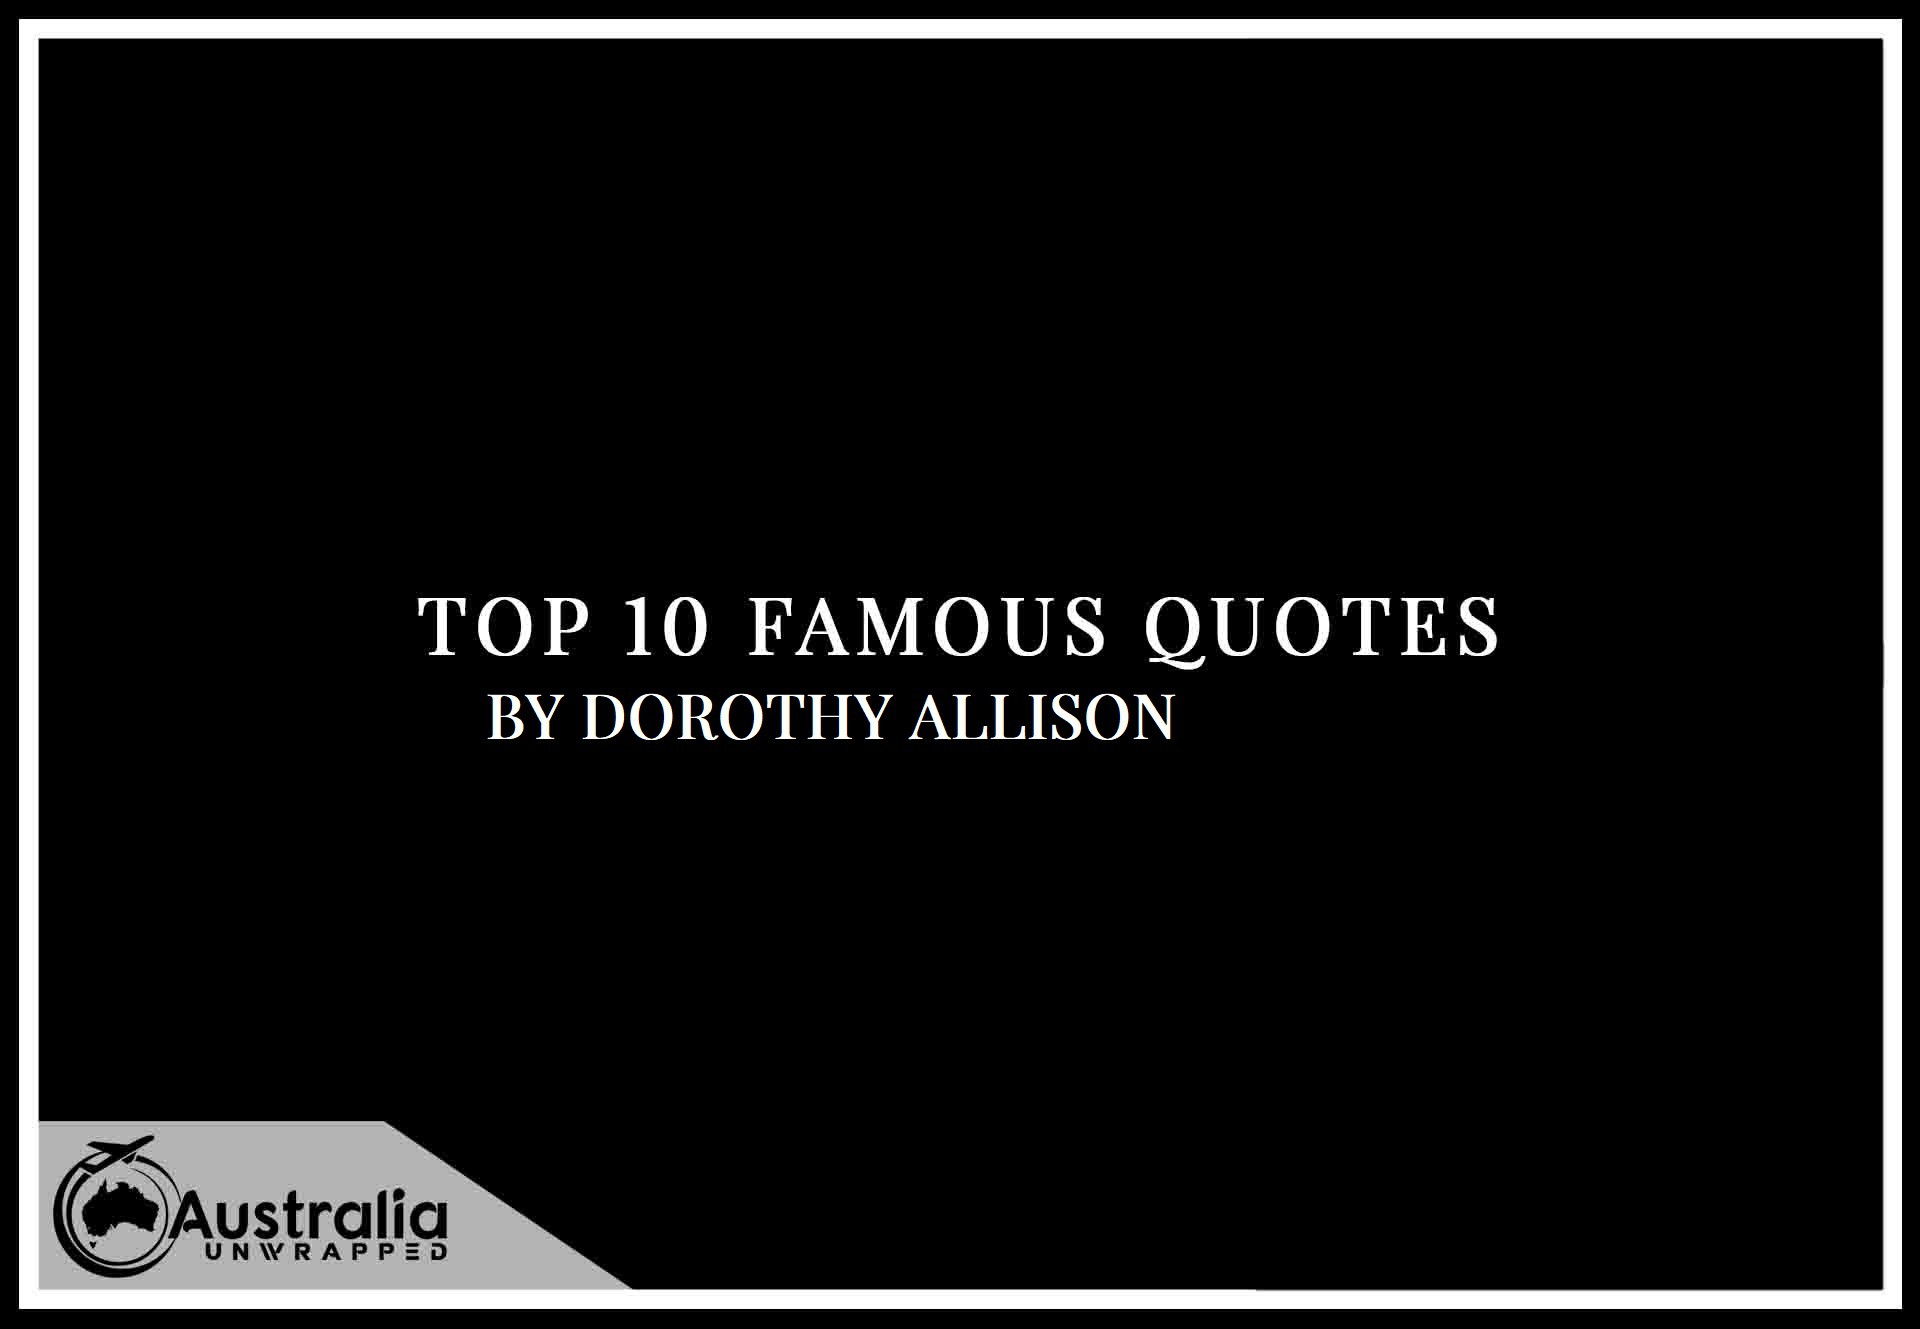 Top 10 Famous Quotes by Author Dorothy Allison